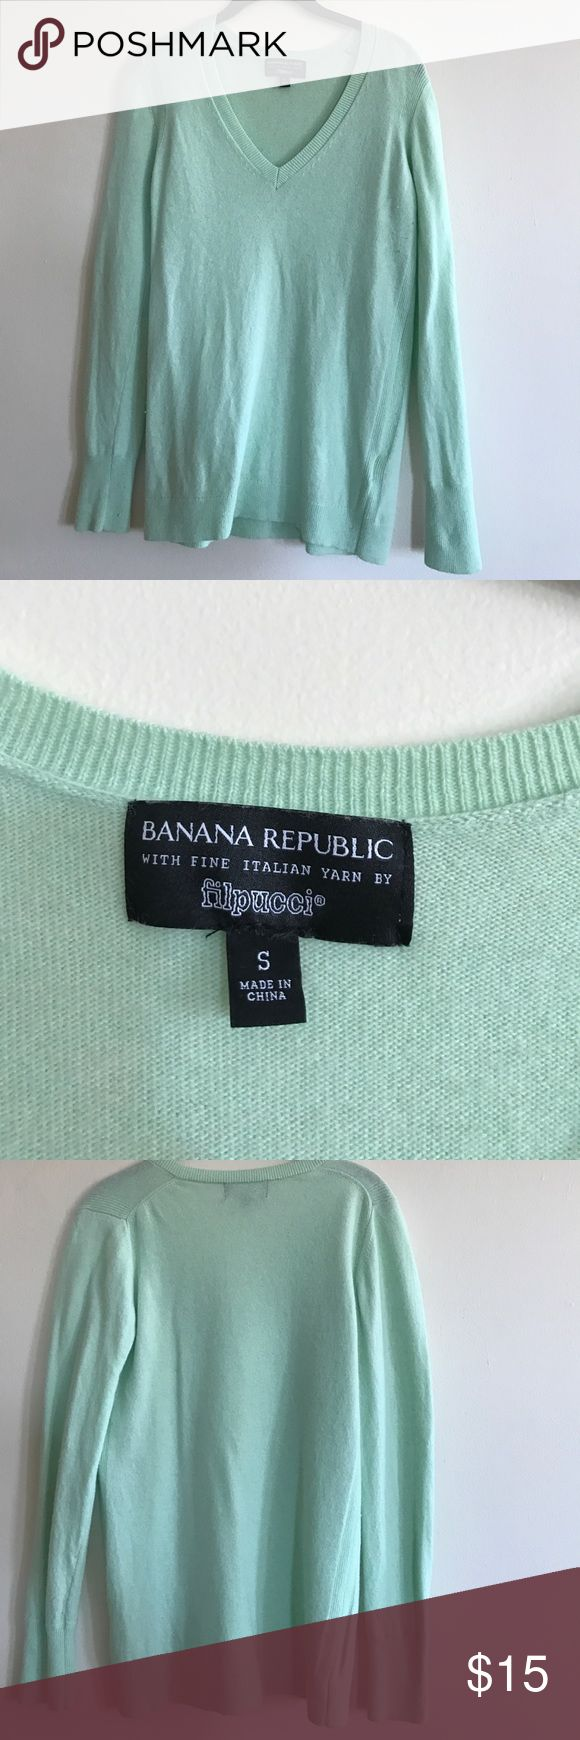 Banana republic filpucci mint sweater S EUC worn just a few times and washed. Banana Republic Sweaters V-Necks